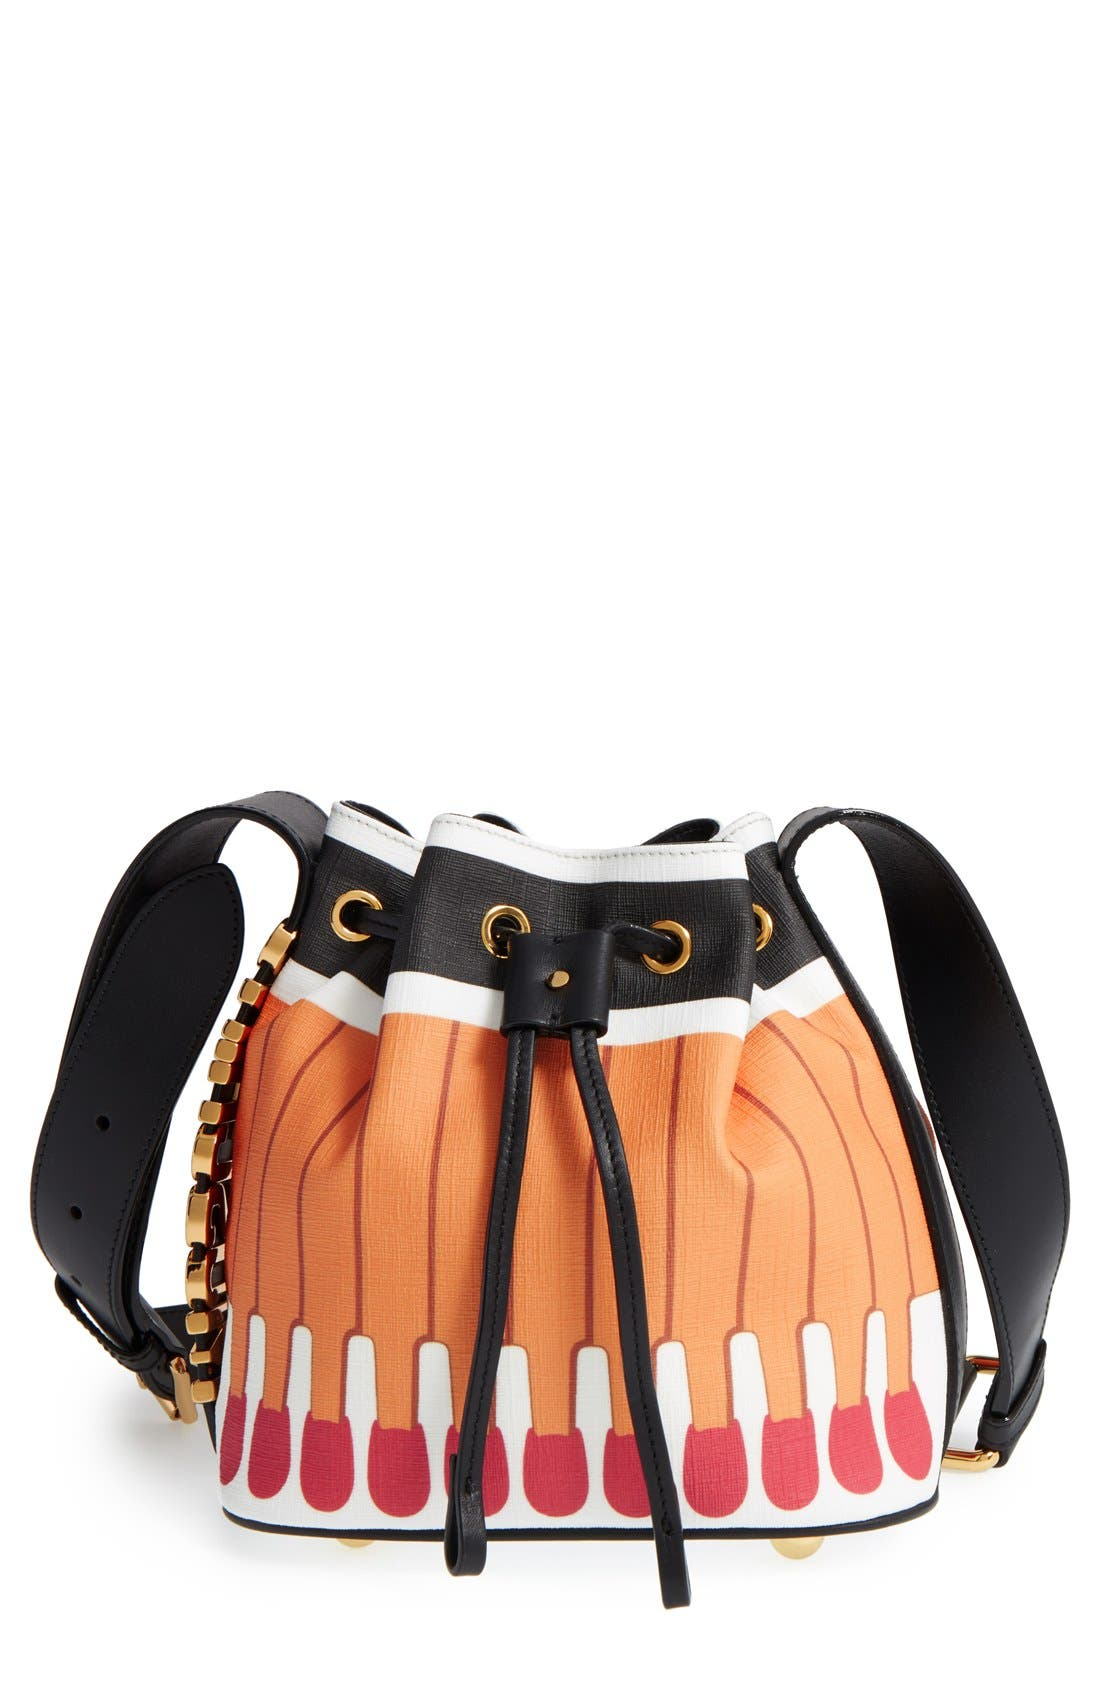 MOSCHINO 'It's Lit Matchbook' Bucket Bag